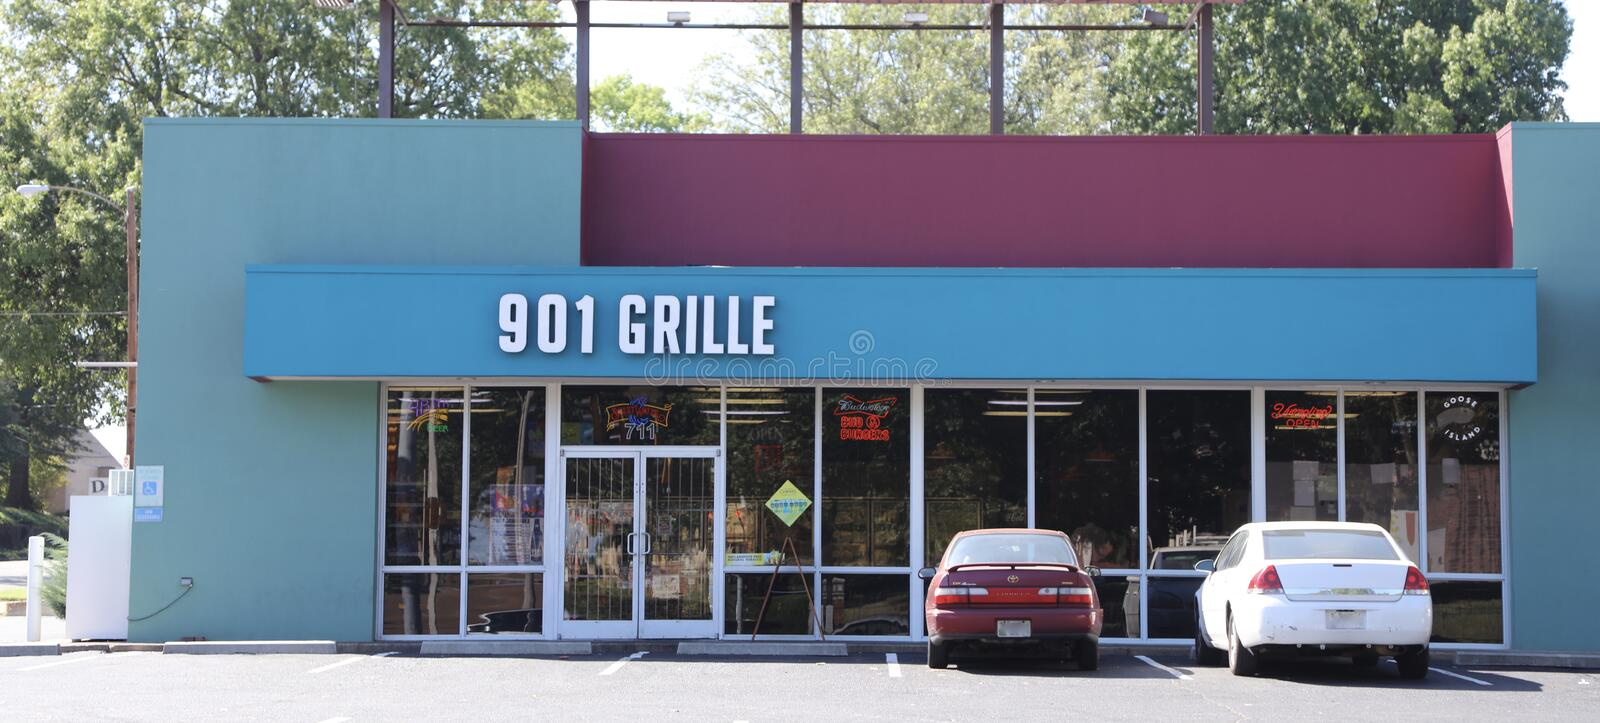 "901 Grille, Midtown Memphis, TN. 901 Grille offers ""farm-to-table favorites featuring regional and international flavors. The East Parkway location will stock image"